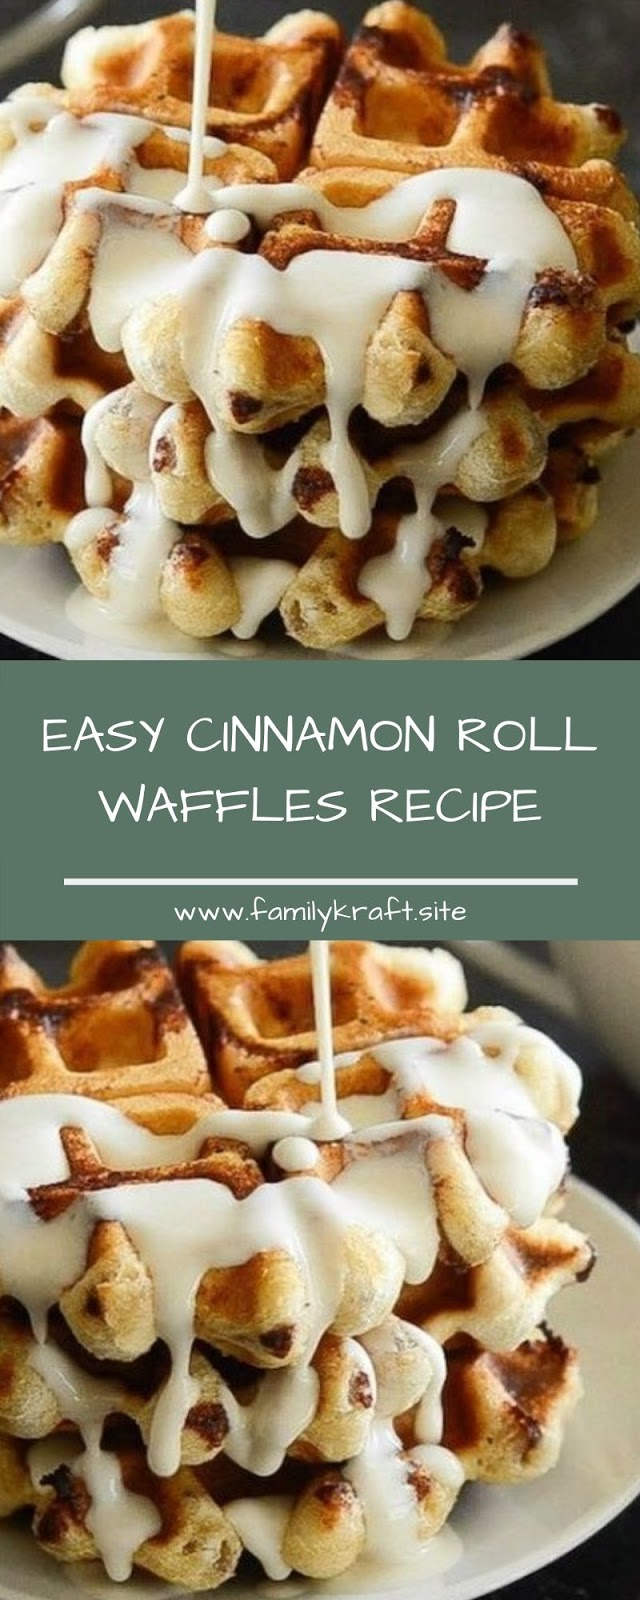 EASY CINNAMON ROLL WAFFLES RECIPE